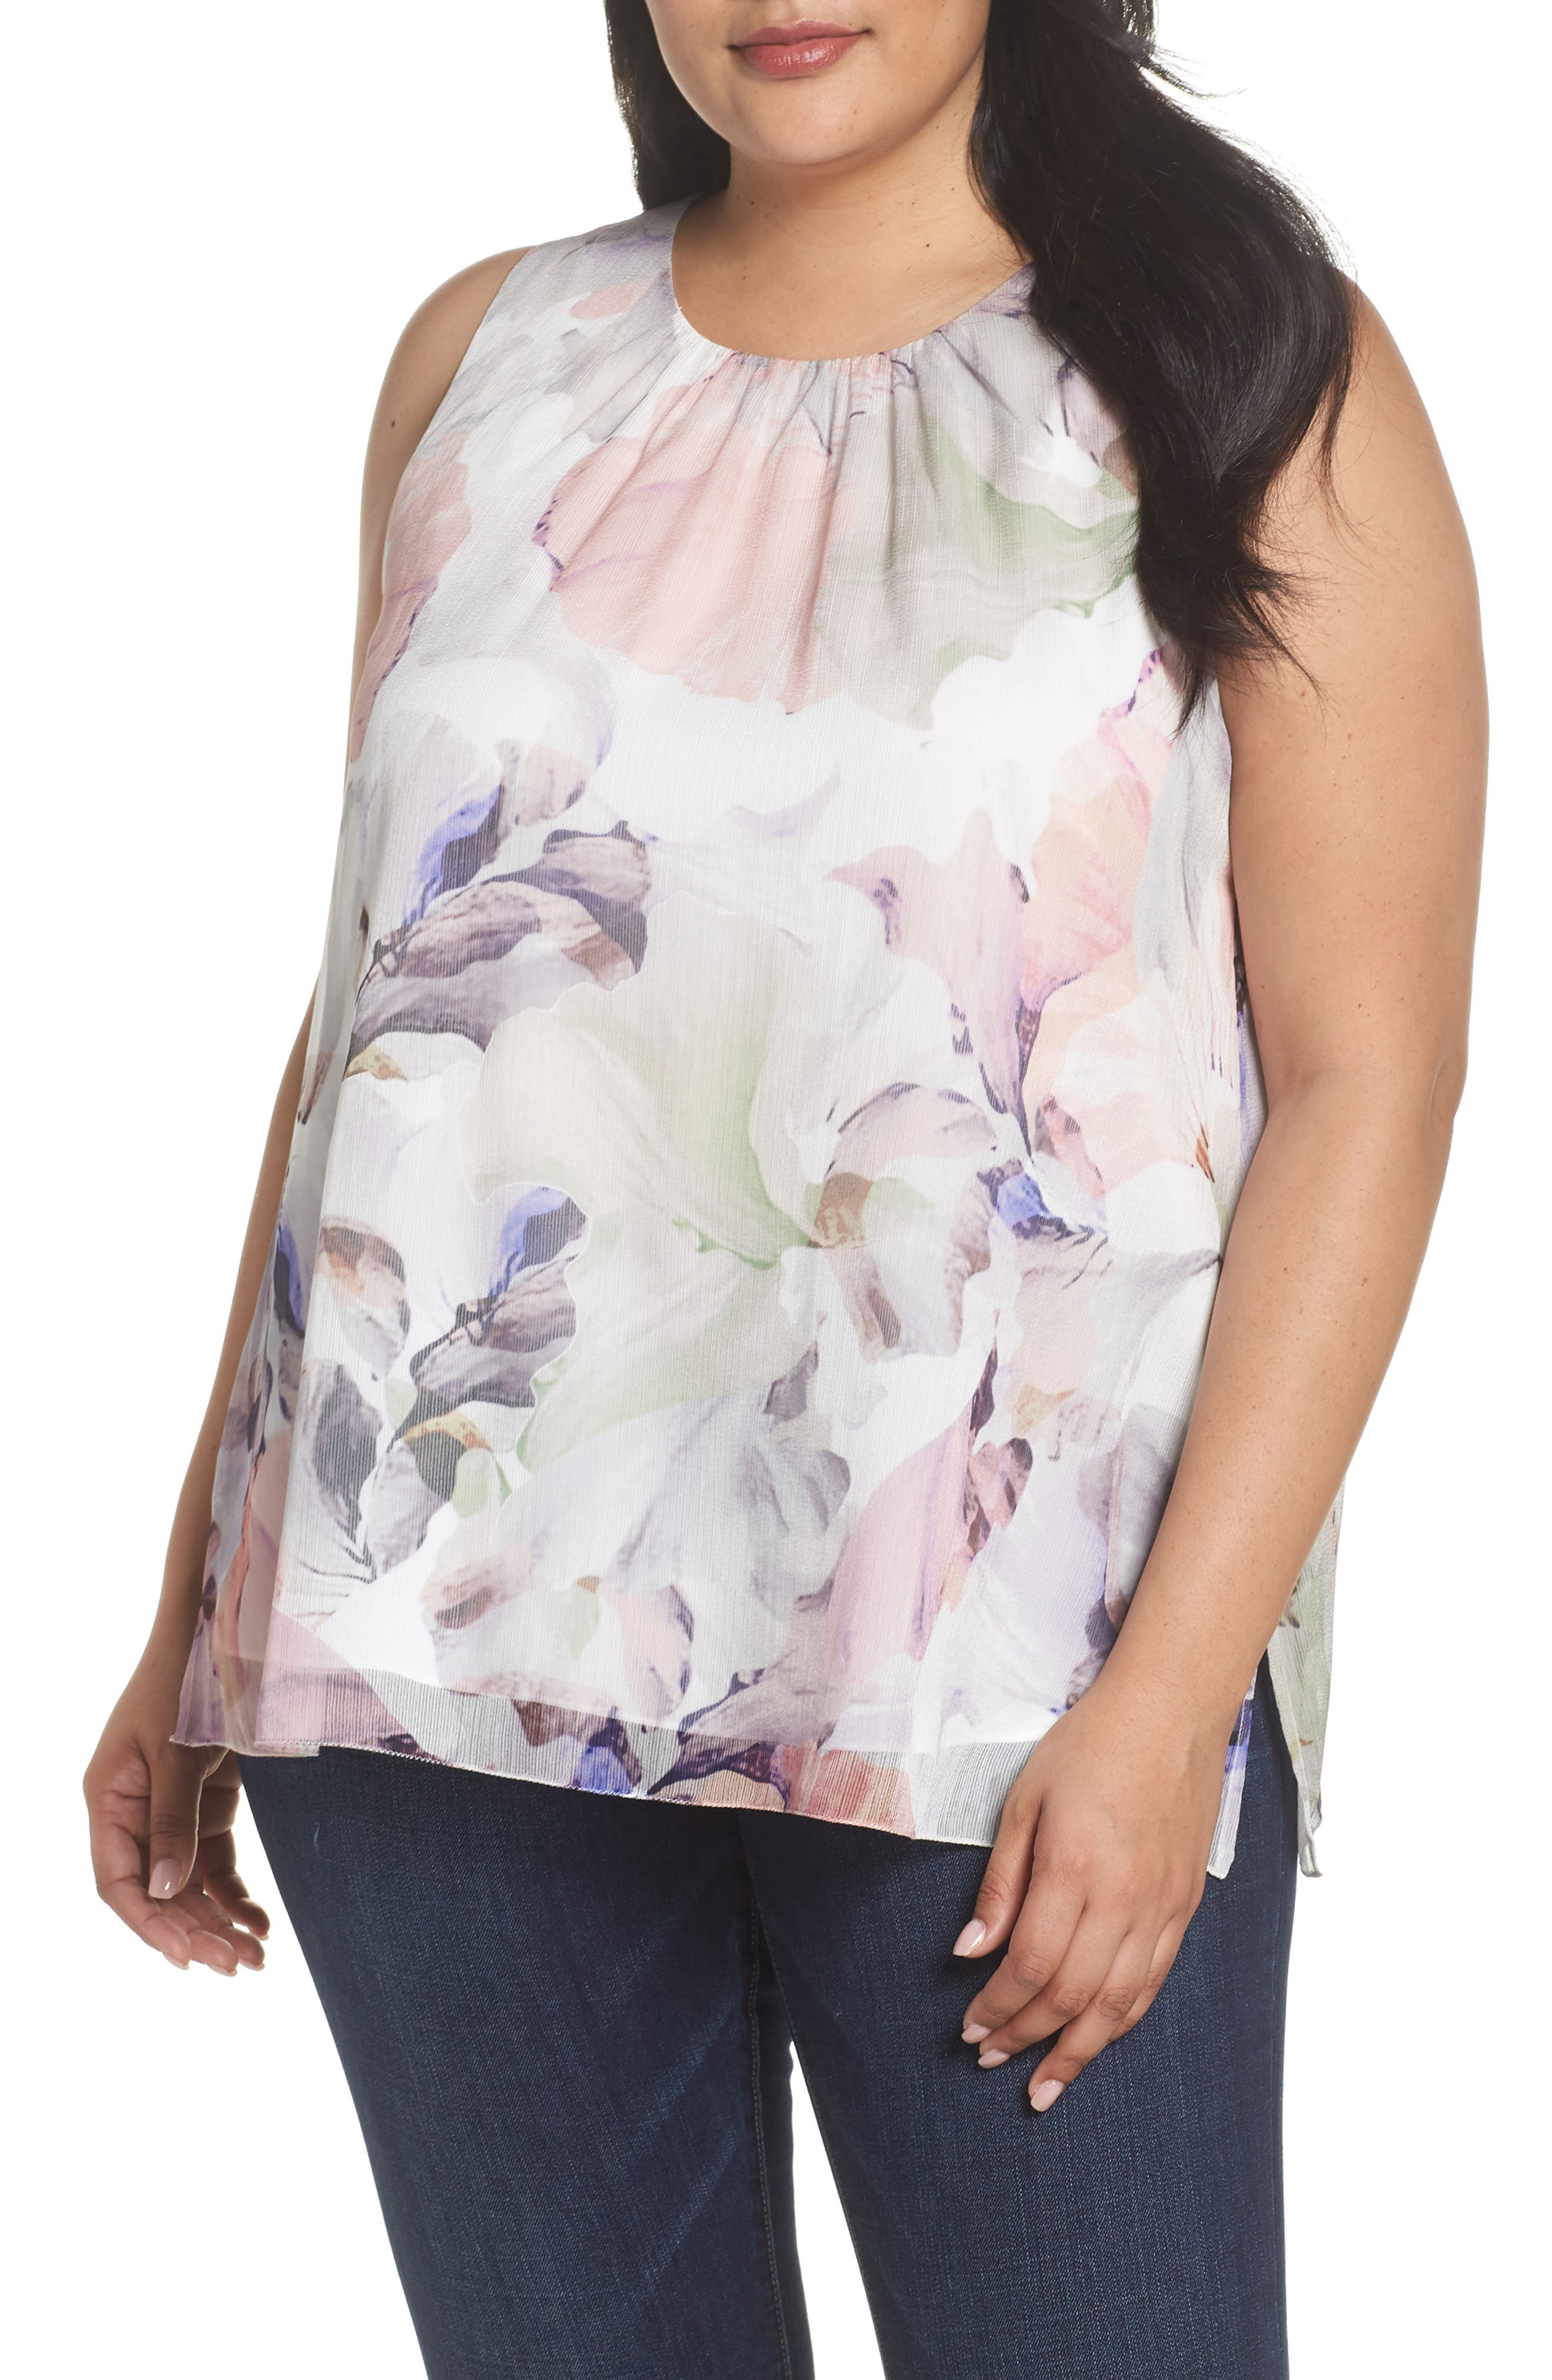 VINCE CAMUTO,                             Diffused Blooms Blouse,                             Main thumbnail 1, color,                             903